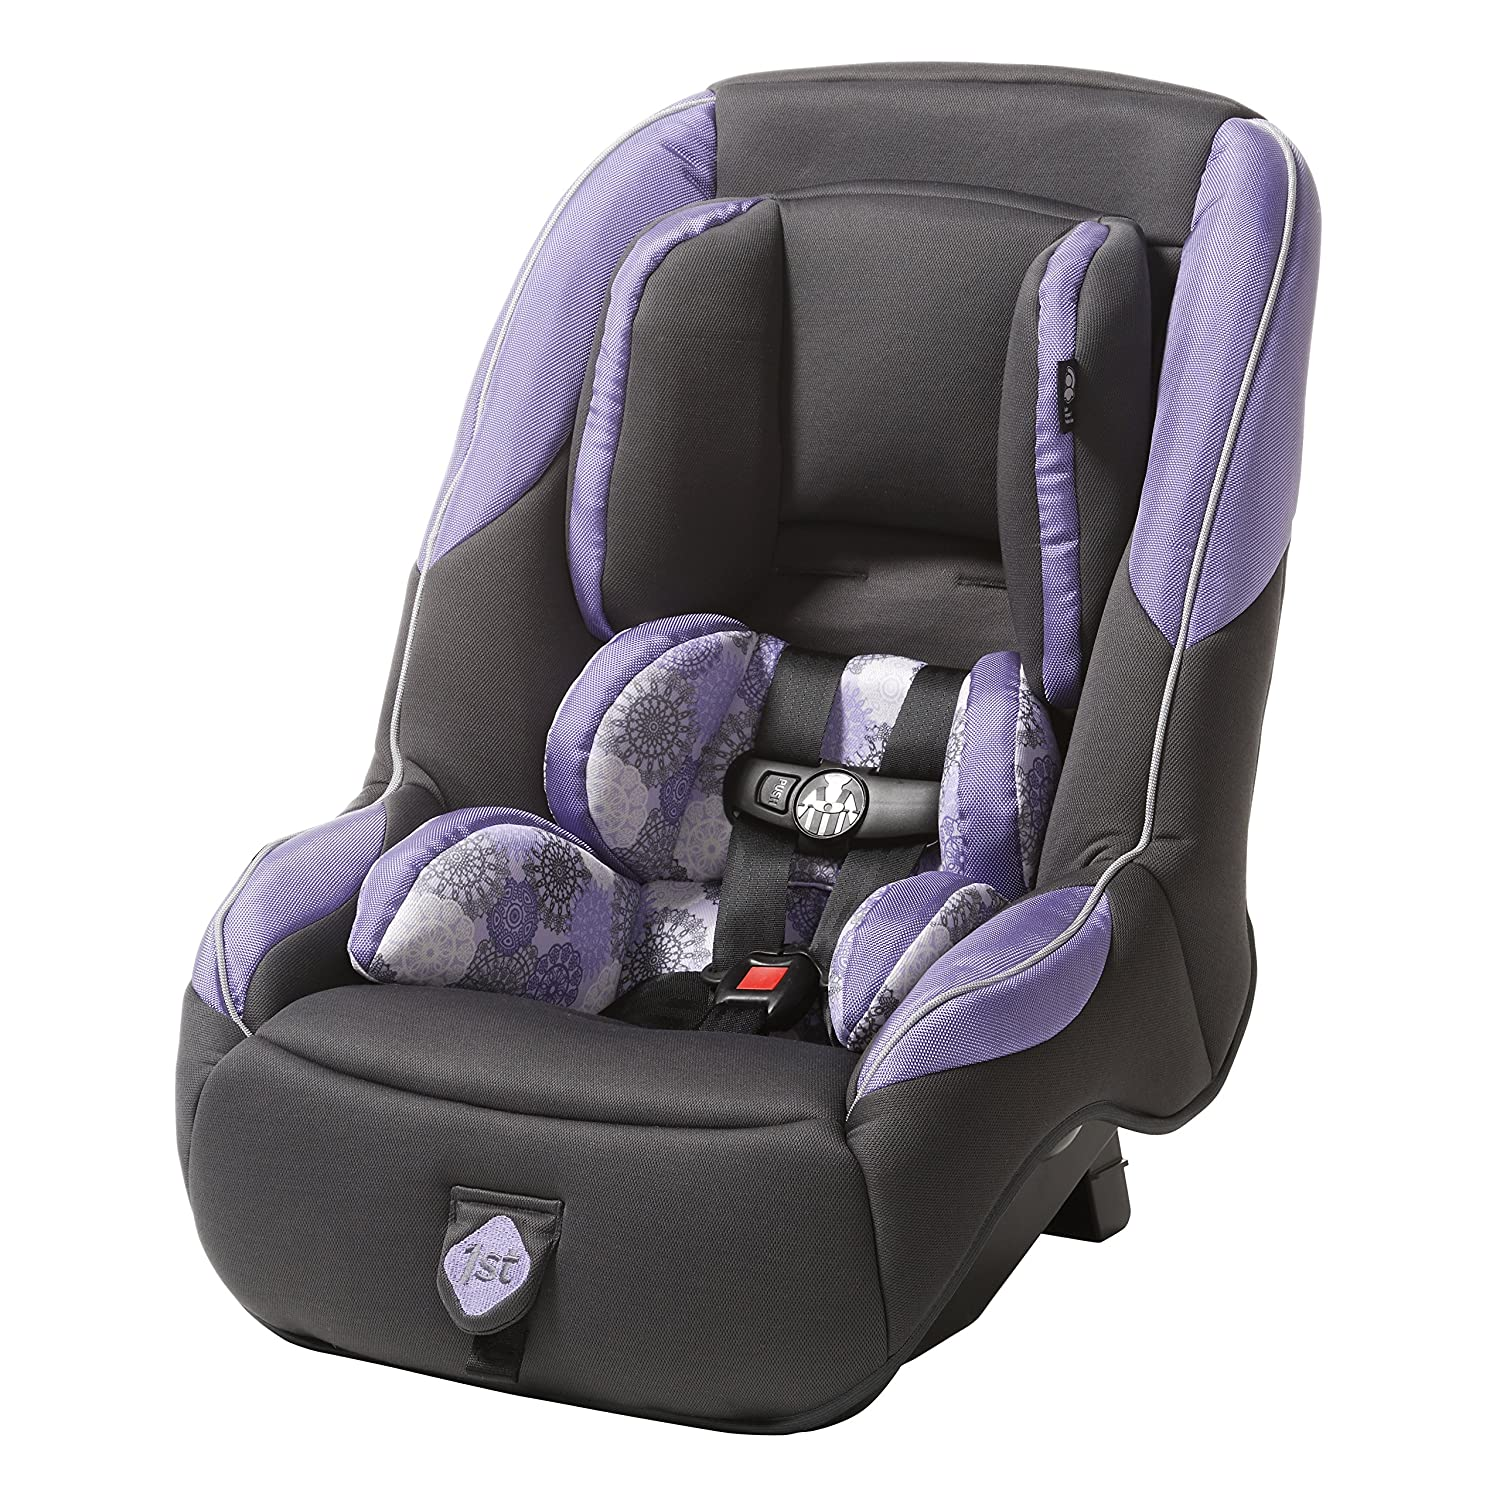 Safety 1st Guide 65 Convertible Car Seat, Victorian Lace CC078BND